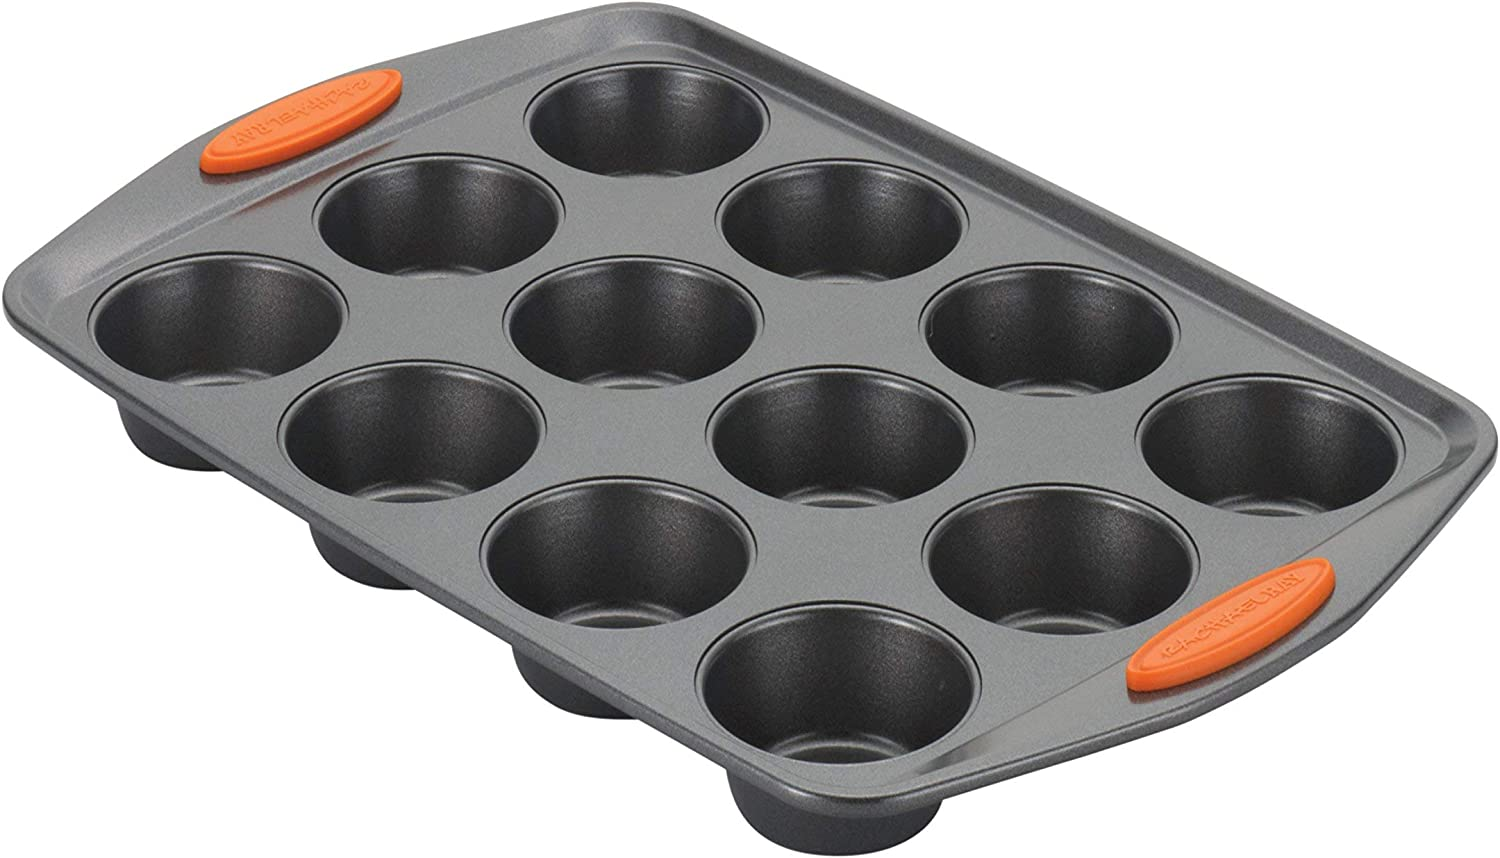 Yum ストア -o Nonstick Bakeware 秀逸 12-Cup Tin Muffin Grips With